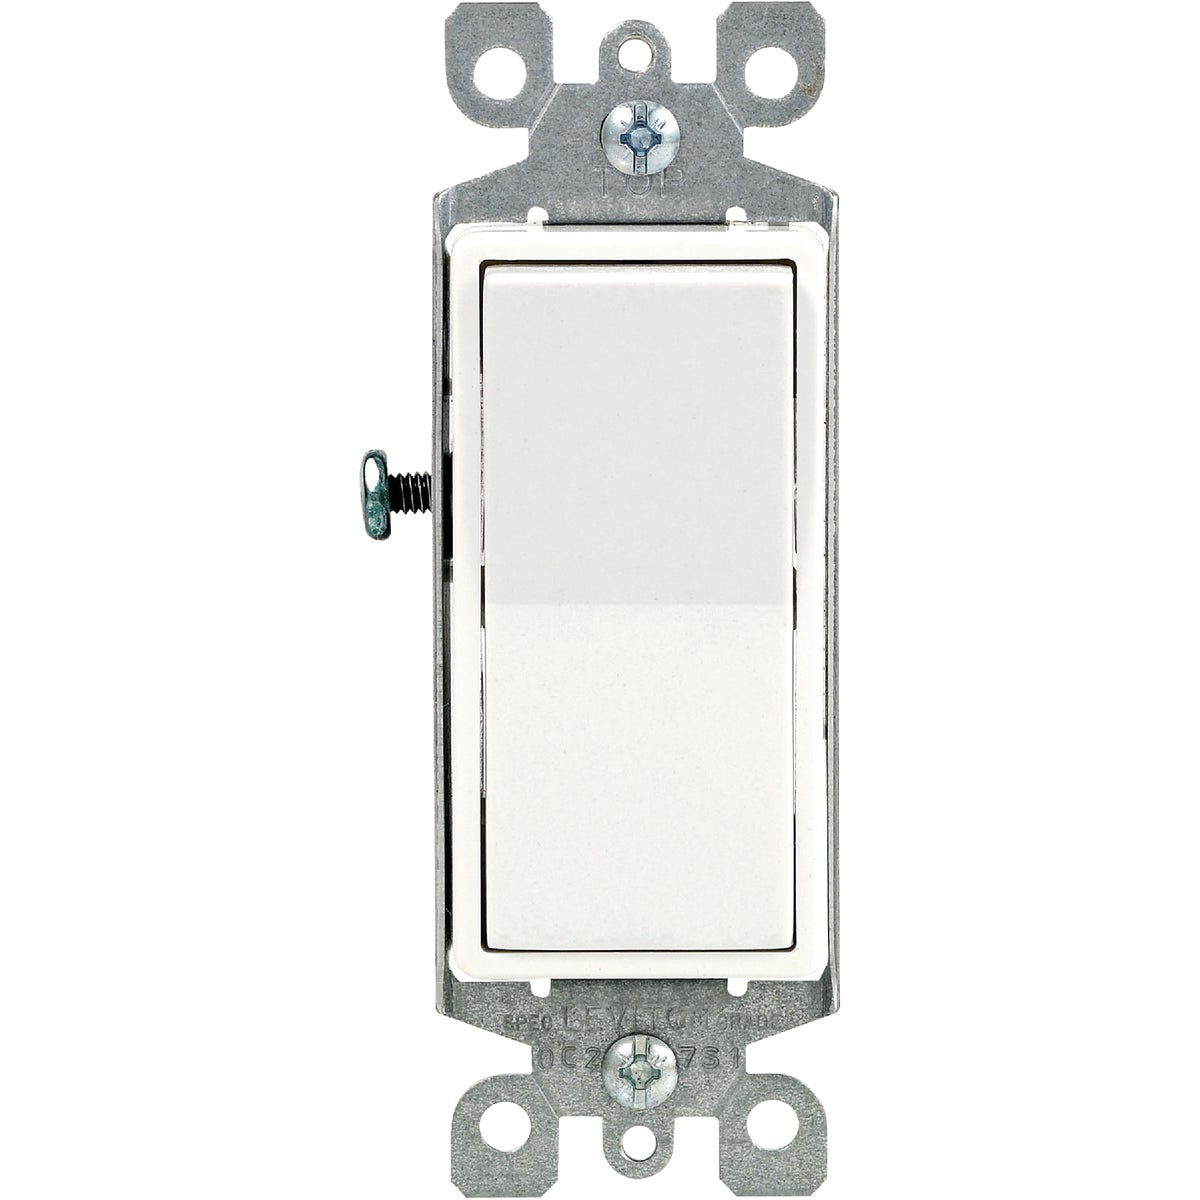 WHT 4-WAY GRND SWITCH - 042-5604-2WSP by Leviton Mfg Co